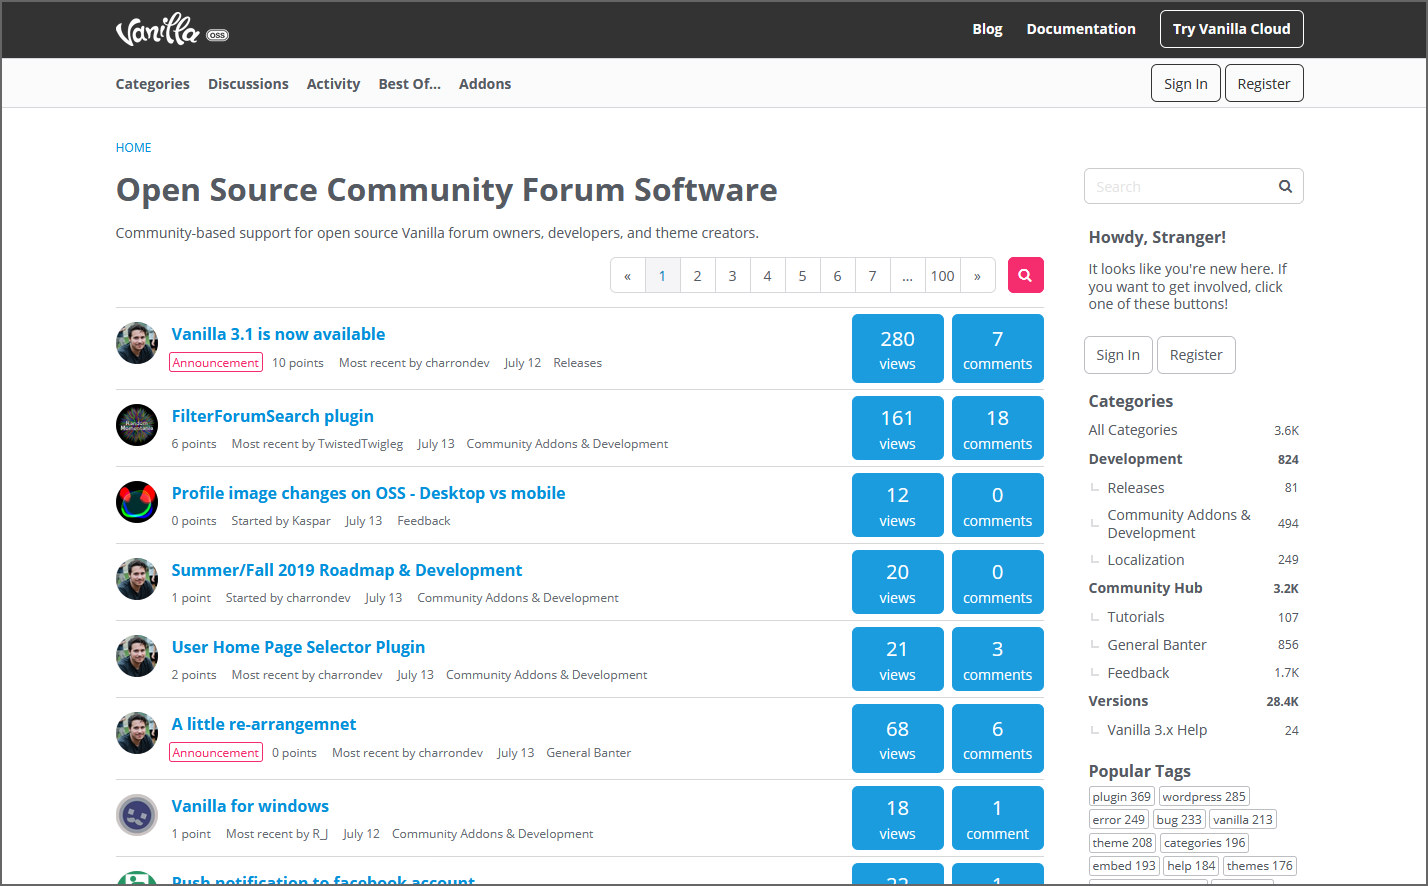 5 Open Source Forum Software - Minimalist, Simple, Modern And Clean